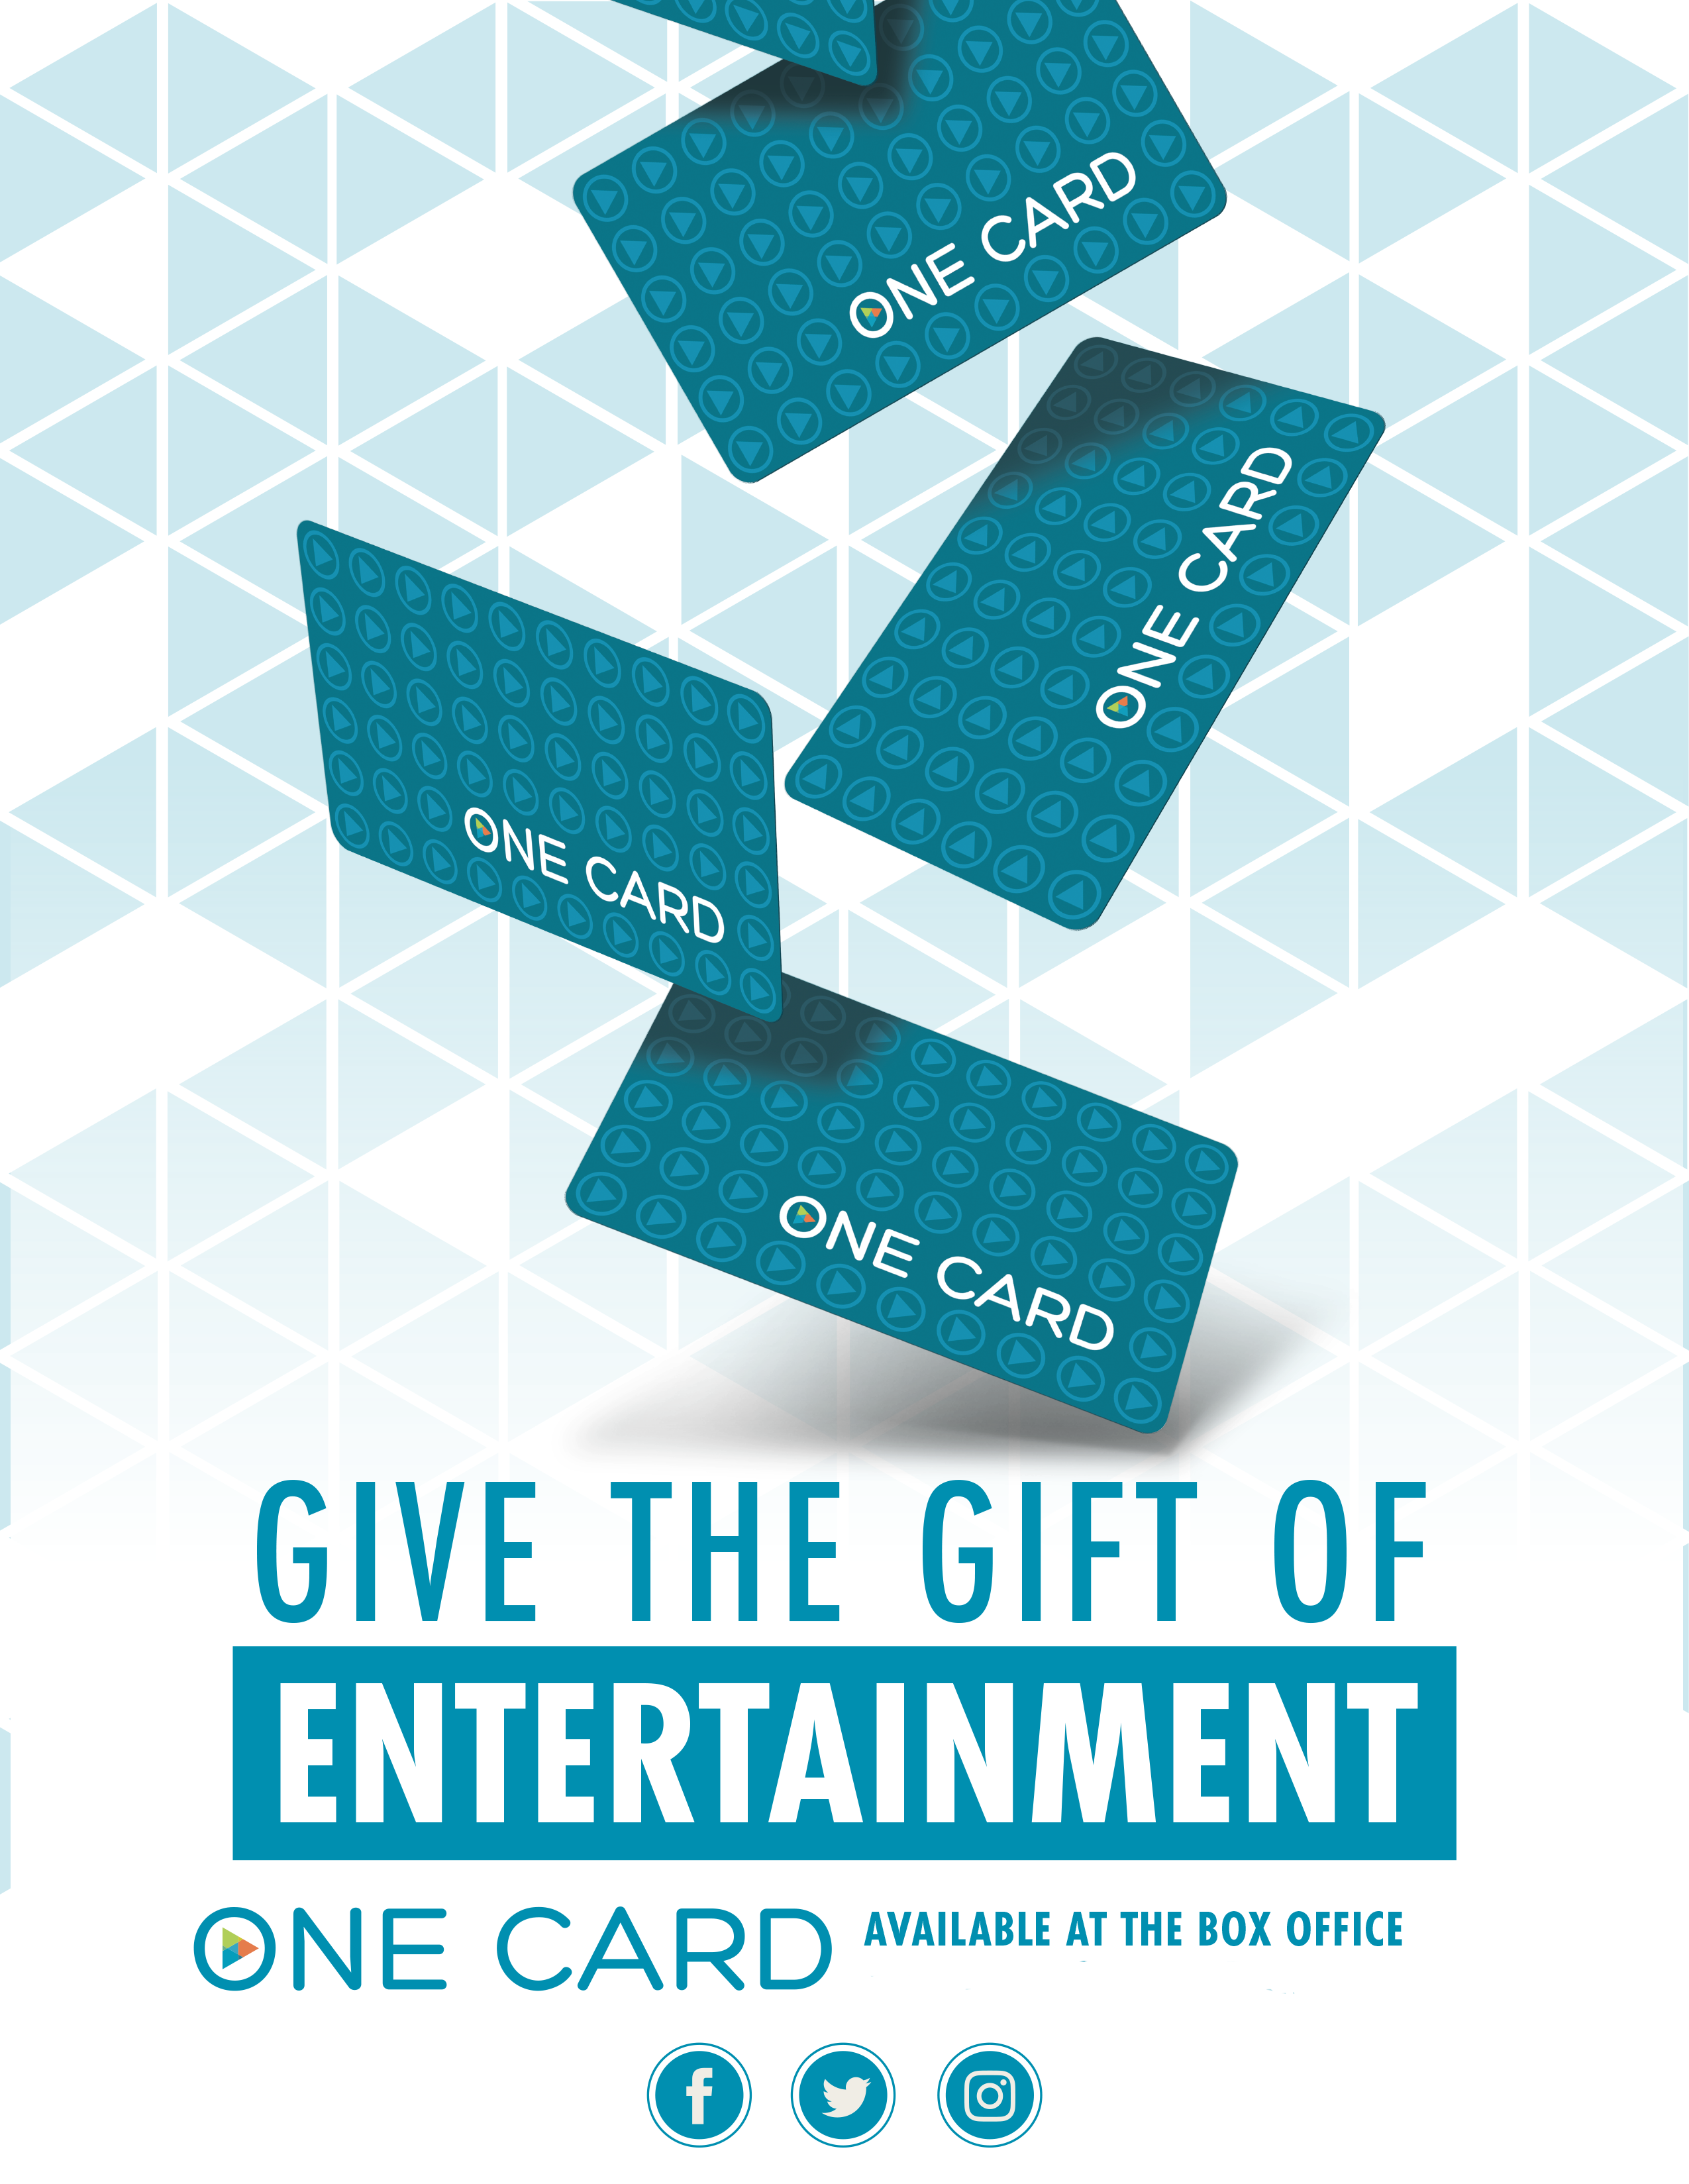 ONECard gift cards can be purchased or reloaded at the box office of your local EVO Cinema.